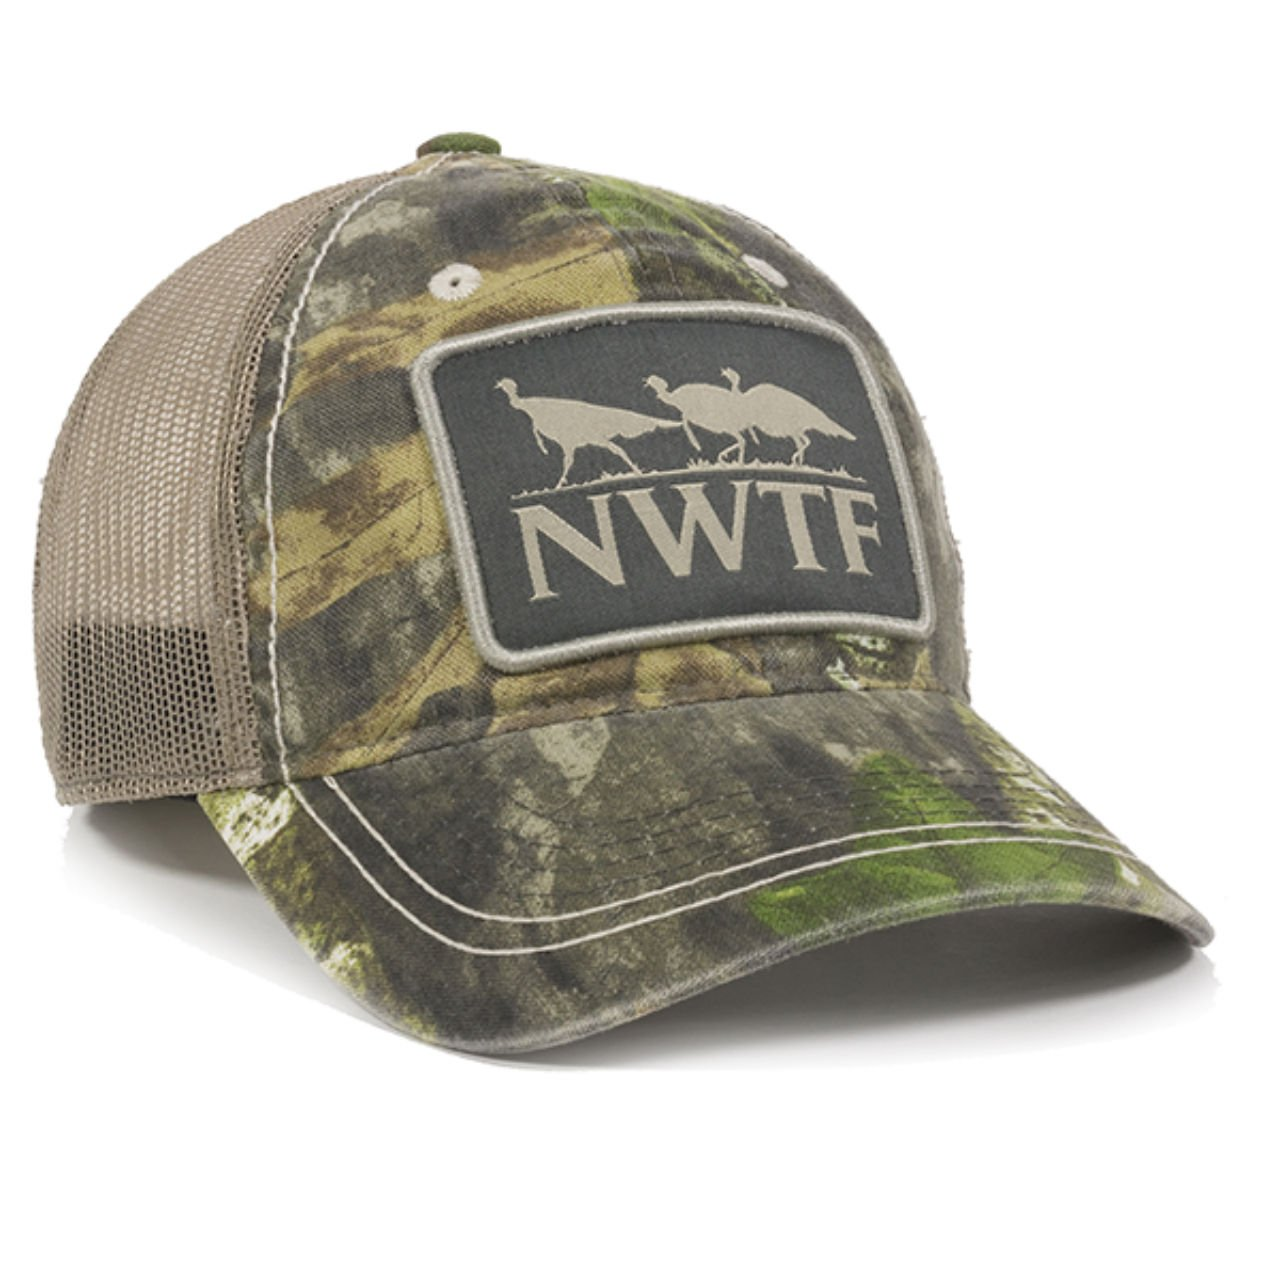 Outdoor Cap NWTF Mossy Oak Obsession National Wild Turkey Federation Camo Mesh Back Hunting Hat by Outdoor Cap (Image #2)